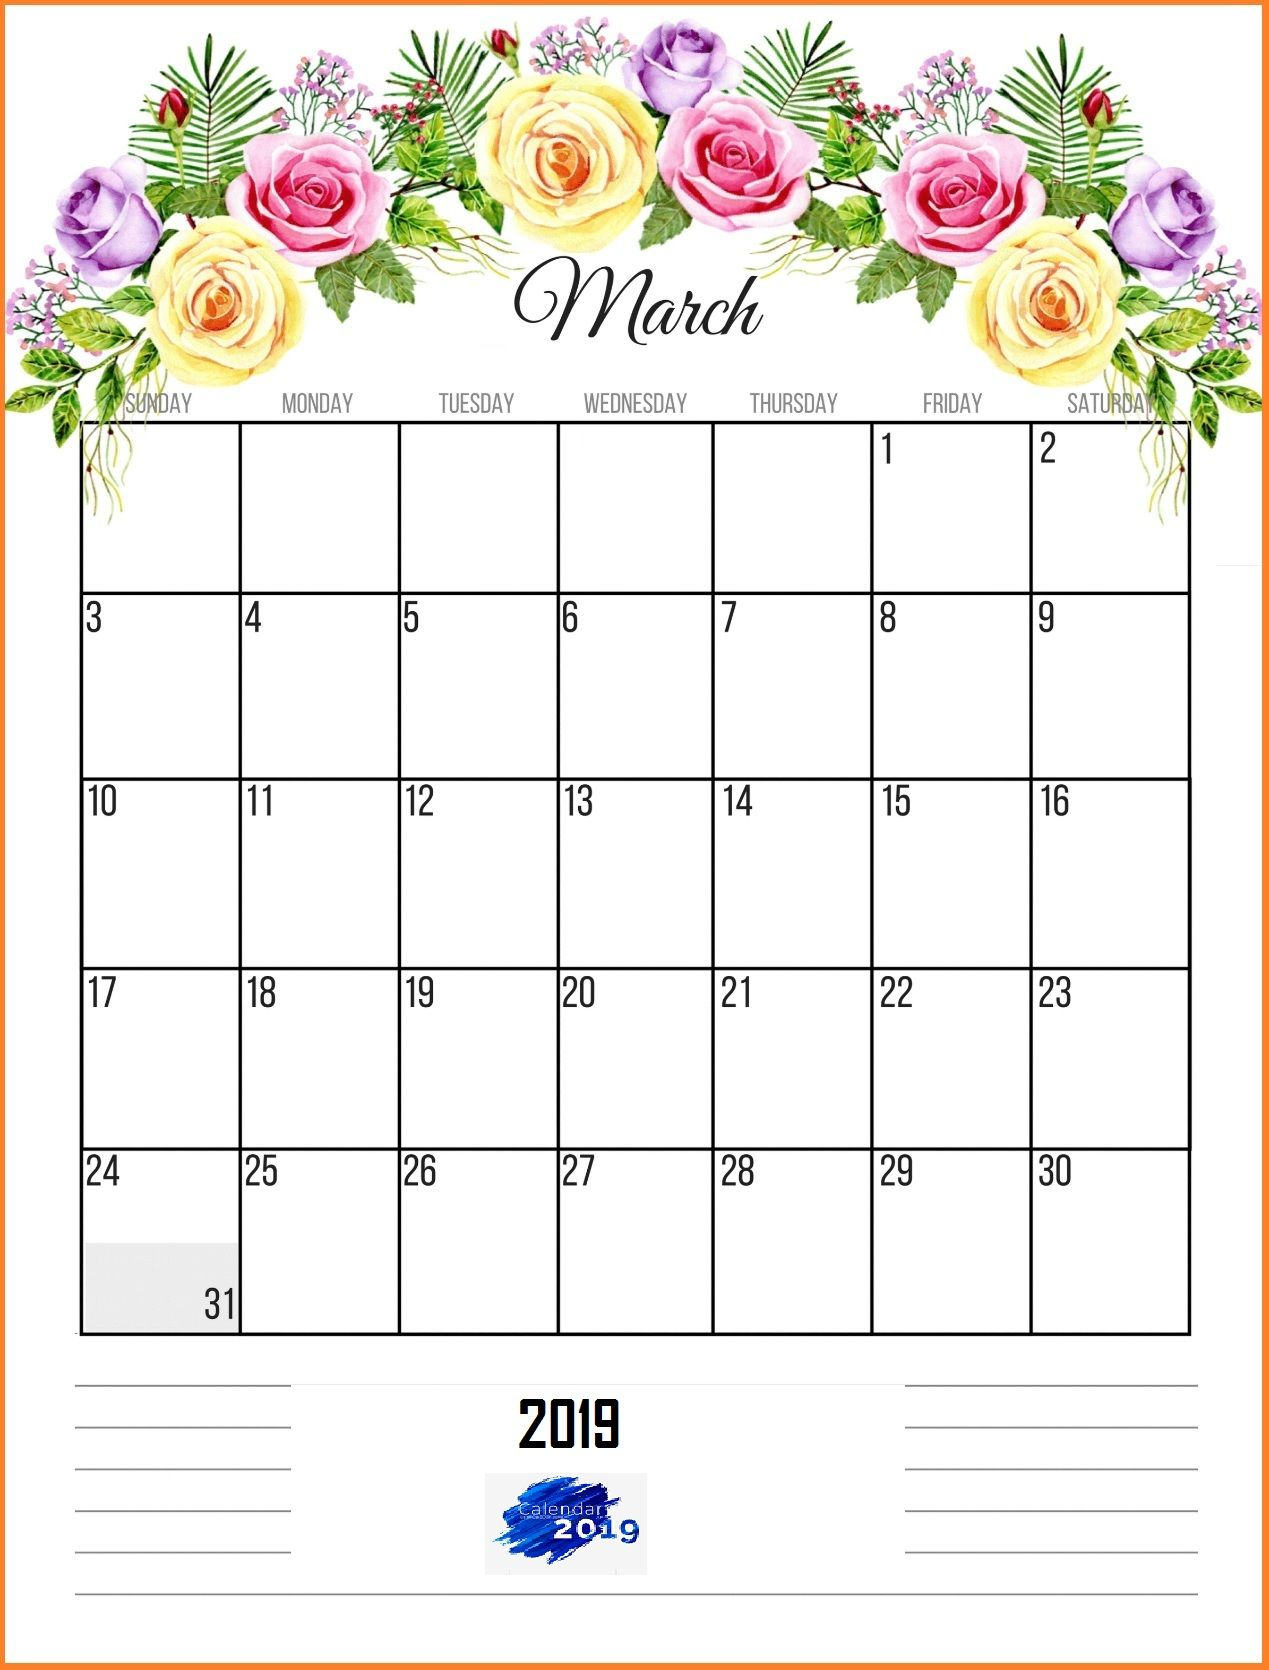 March 2019 Printable Calendar Calendar Wallpaper Calender